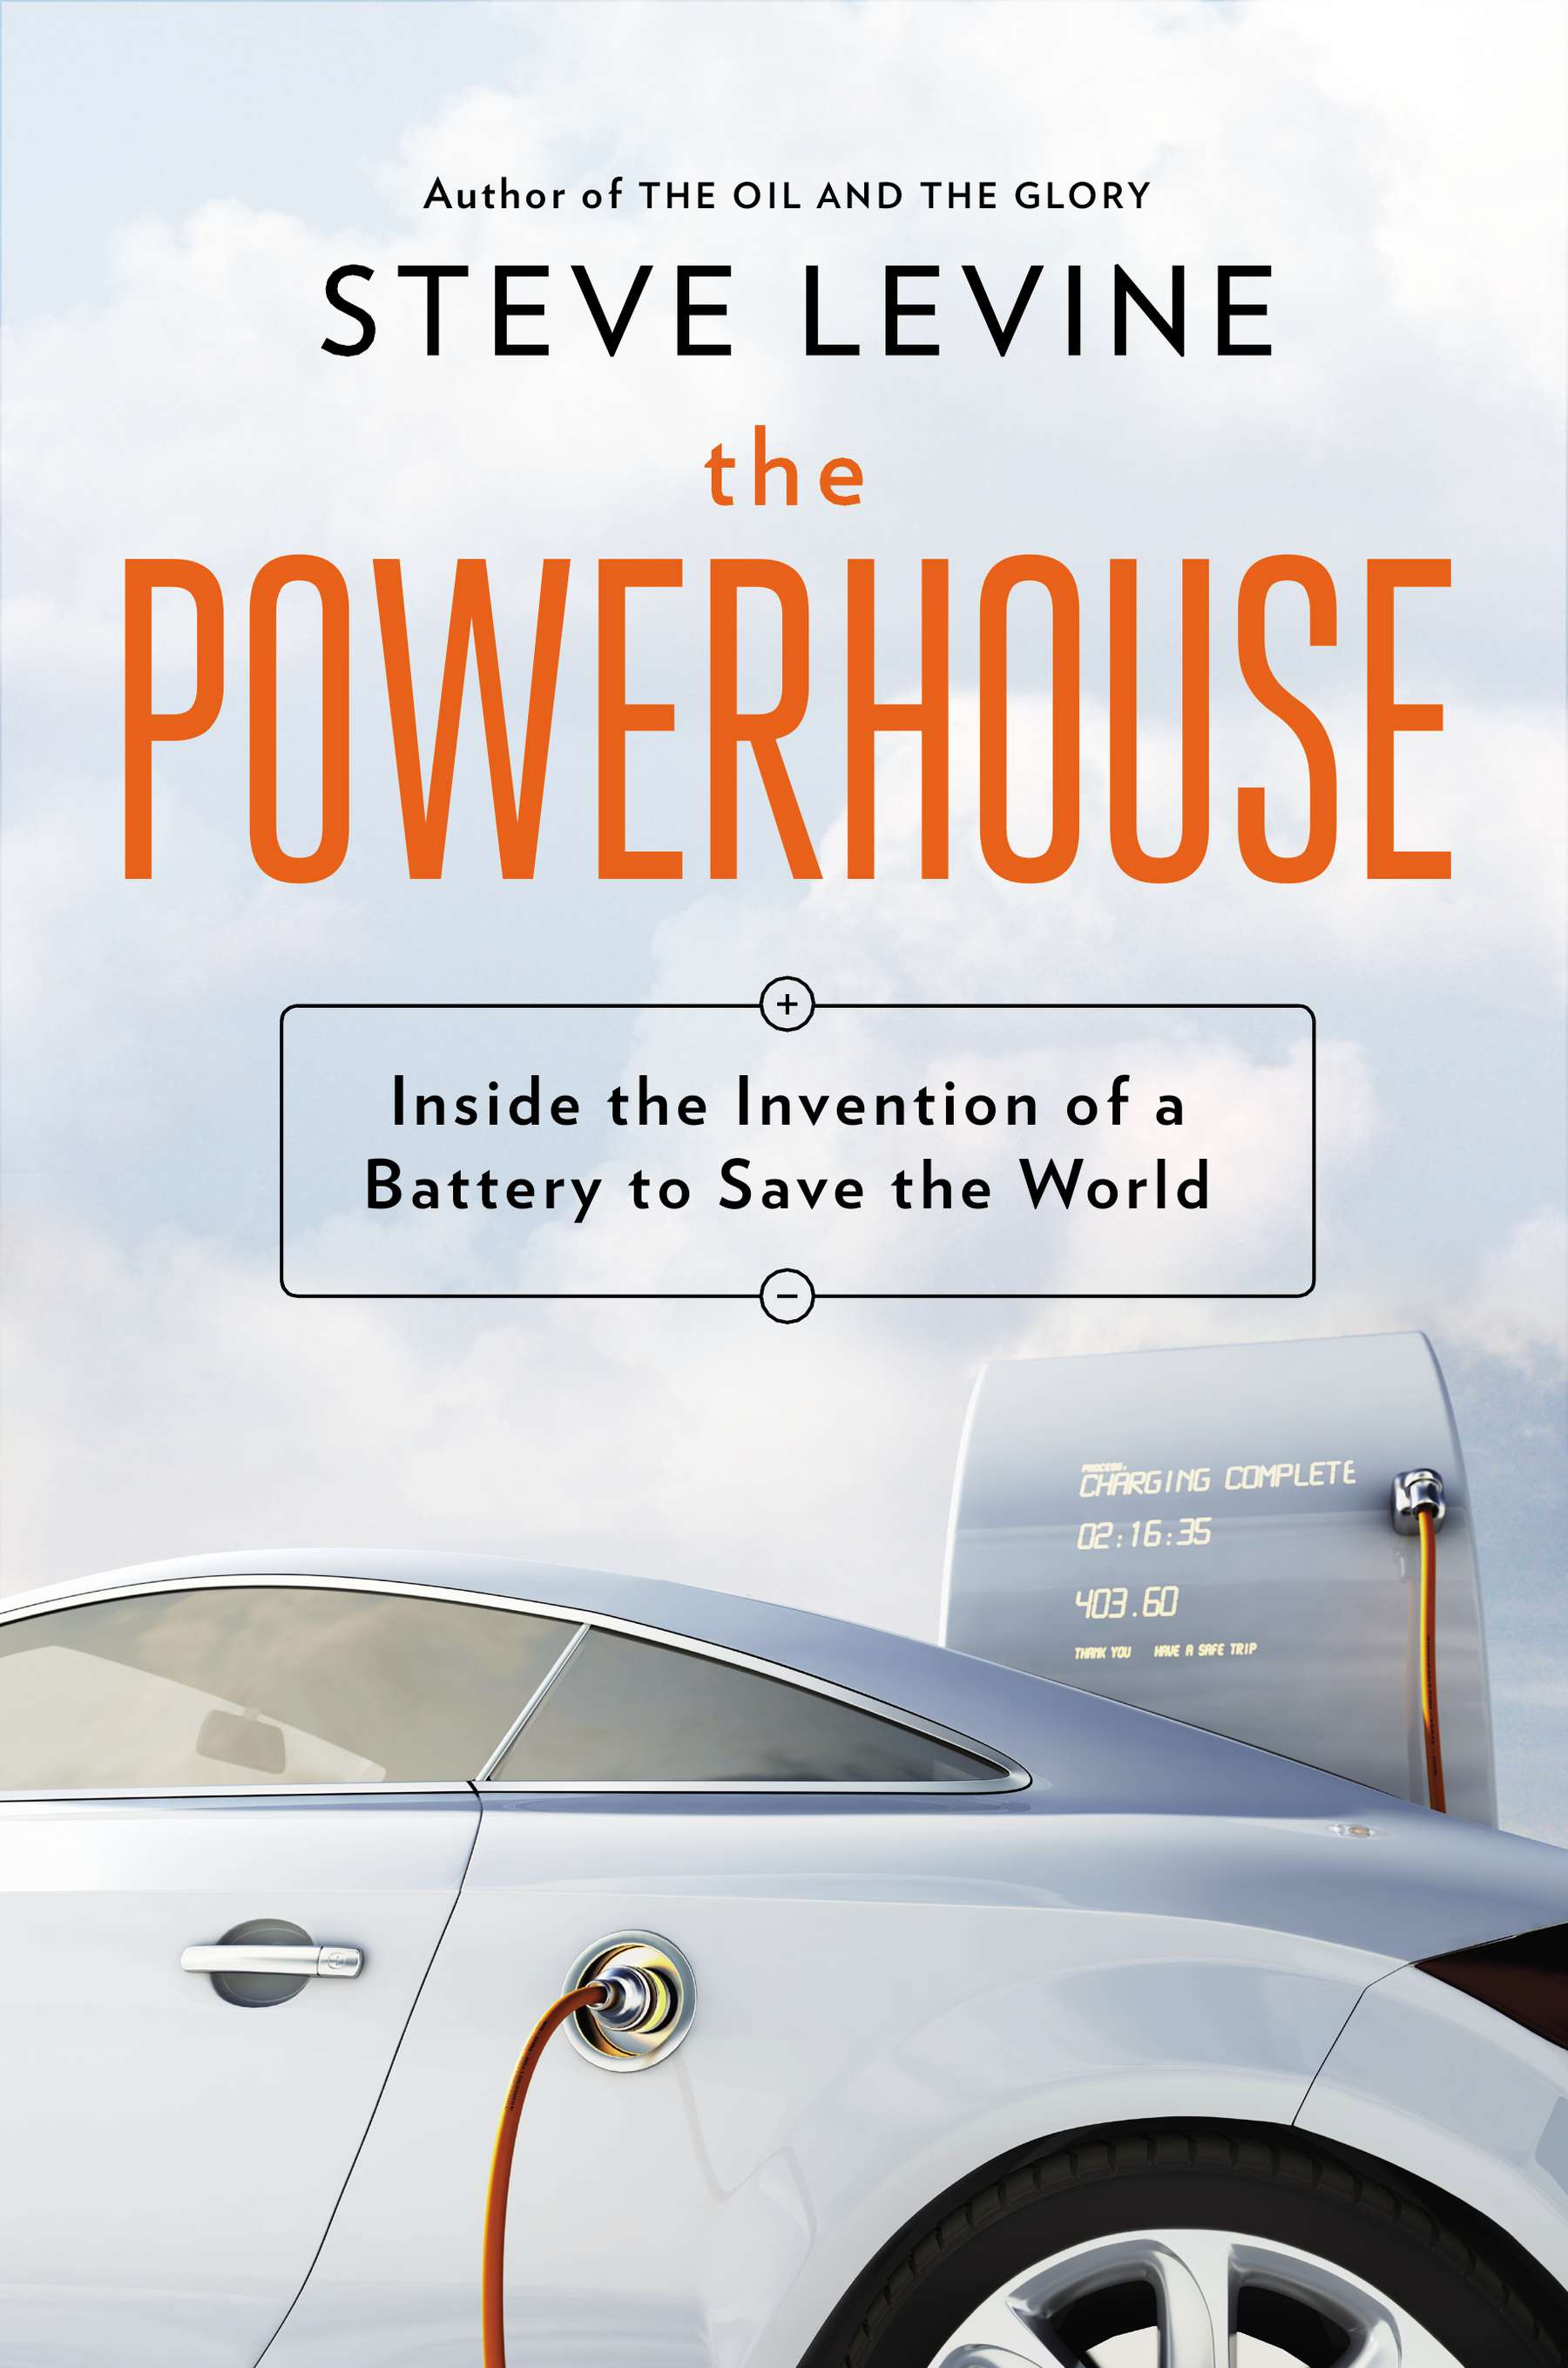 the-powerhouse-steve-levine-book-cover